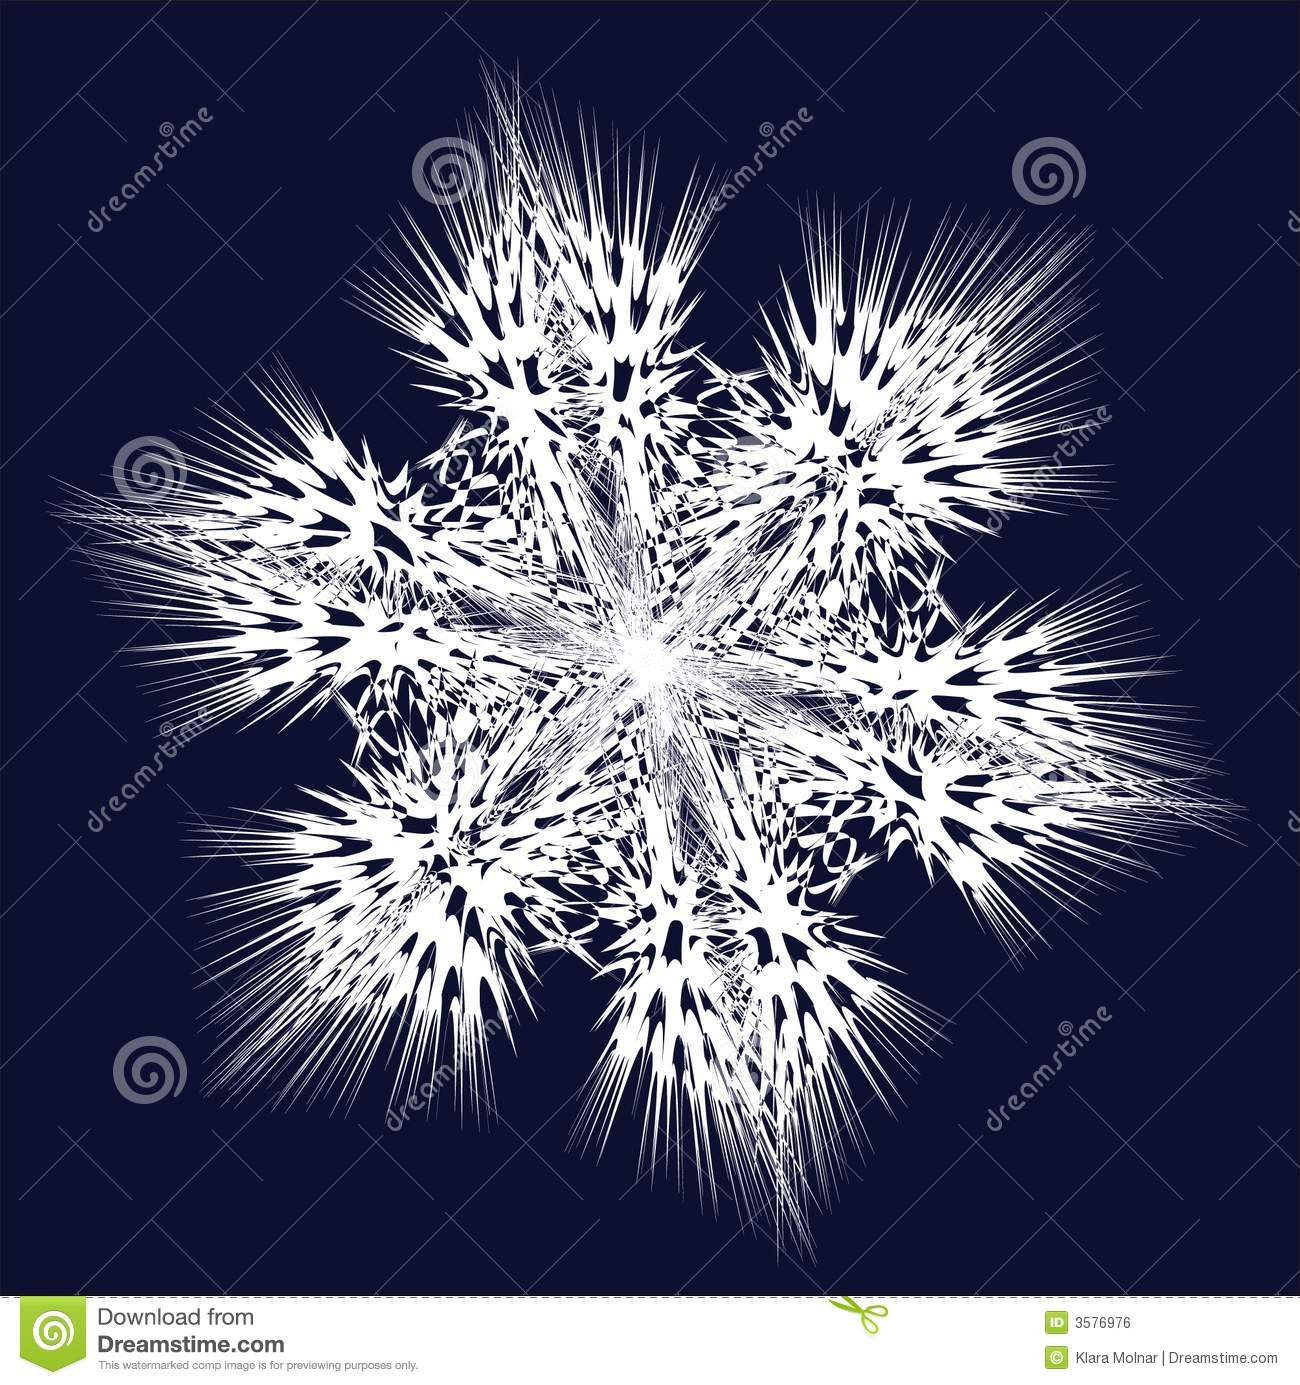 Snowflake Vector Free Download Vector snowflakeWhite Snowflake Vector Free Download